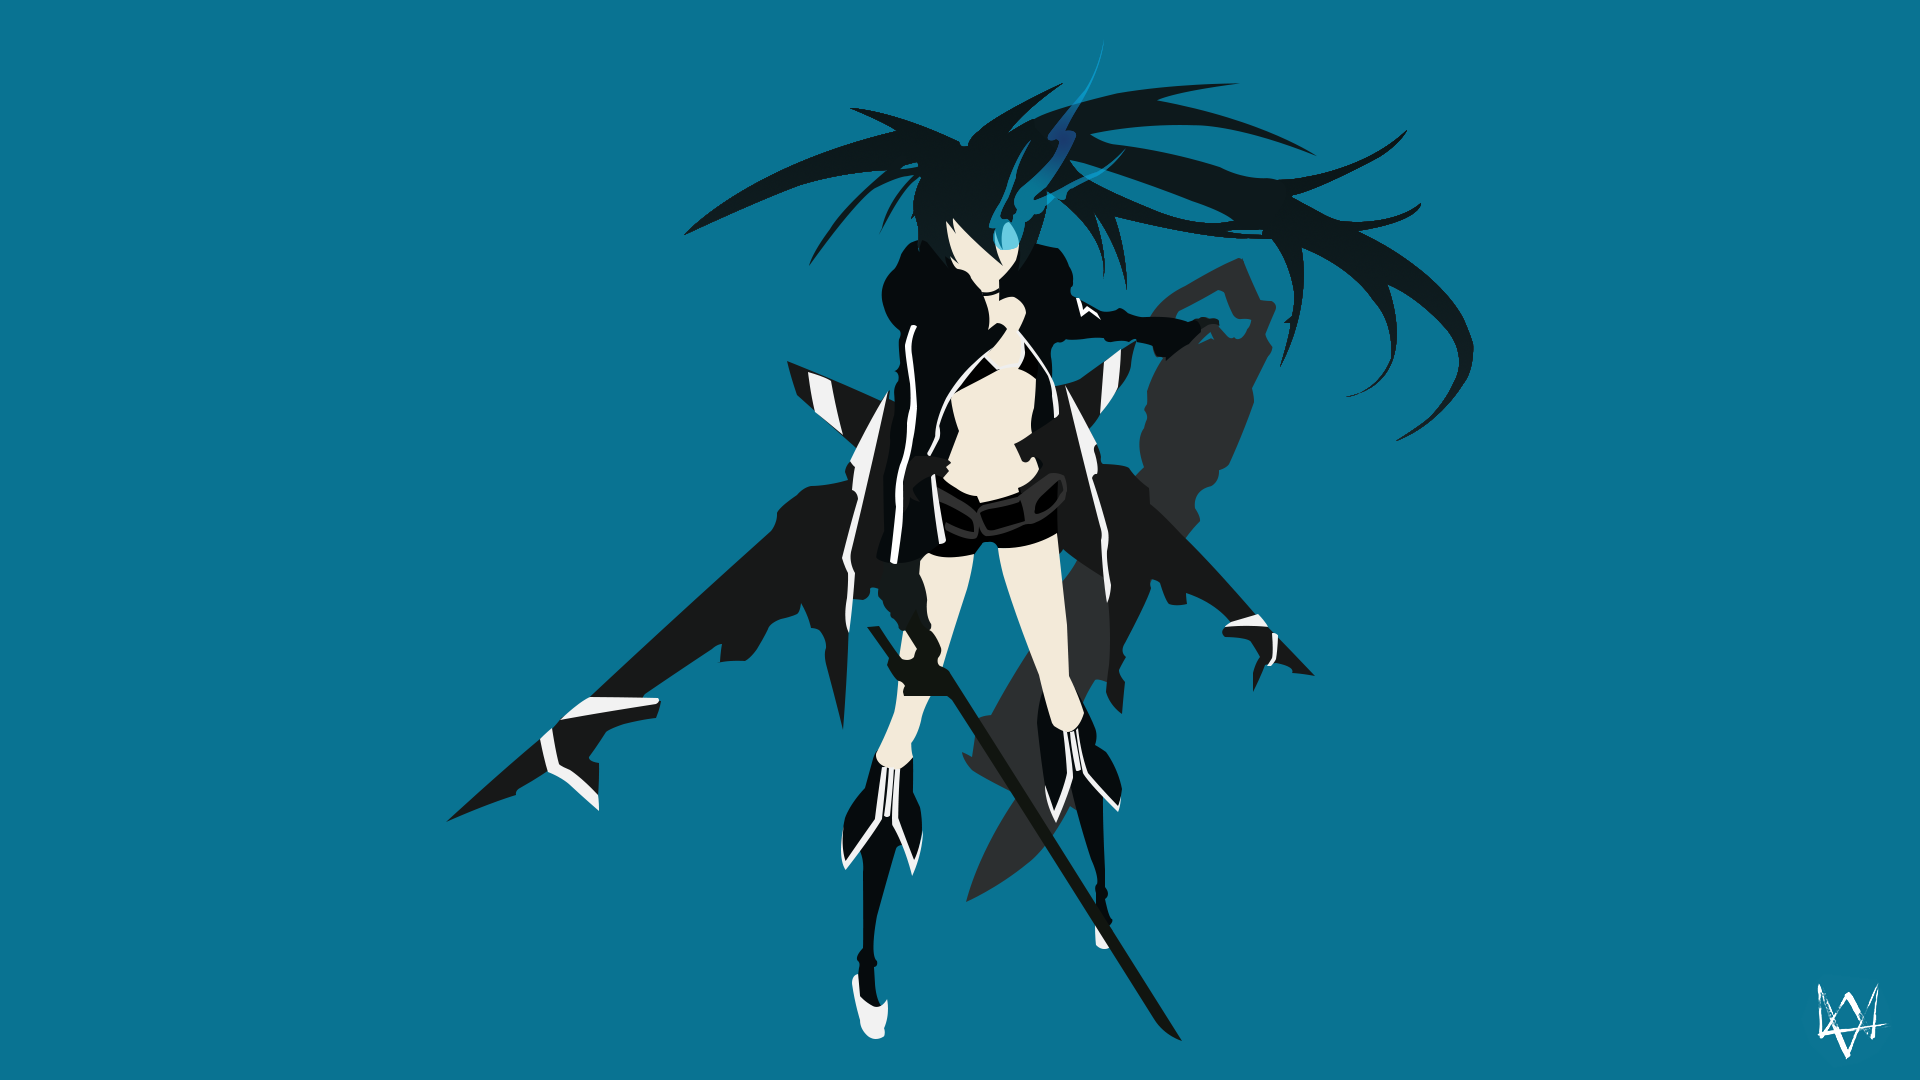 Black Rock Shooter Minimalist Anime Wallpaper By Lucifer012 On